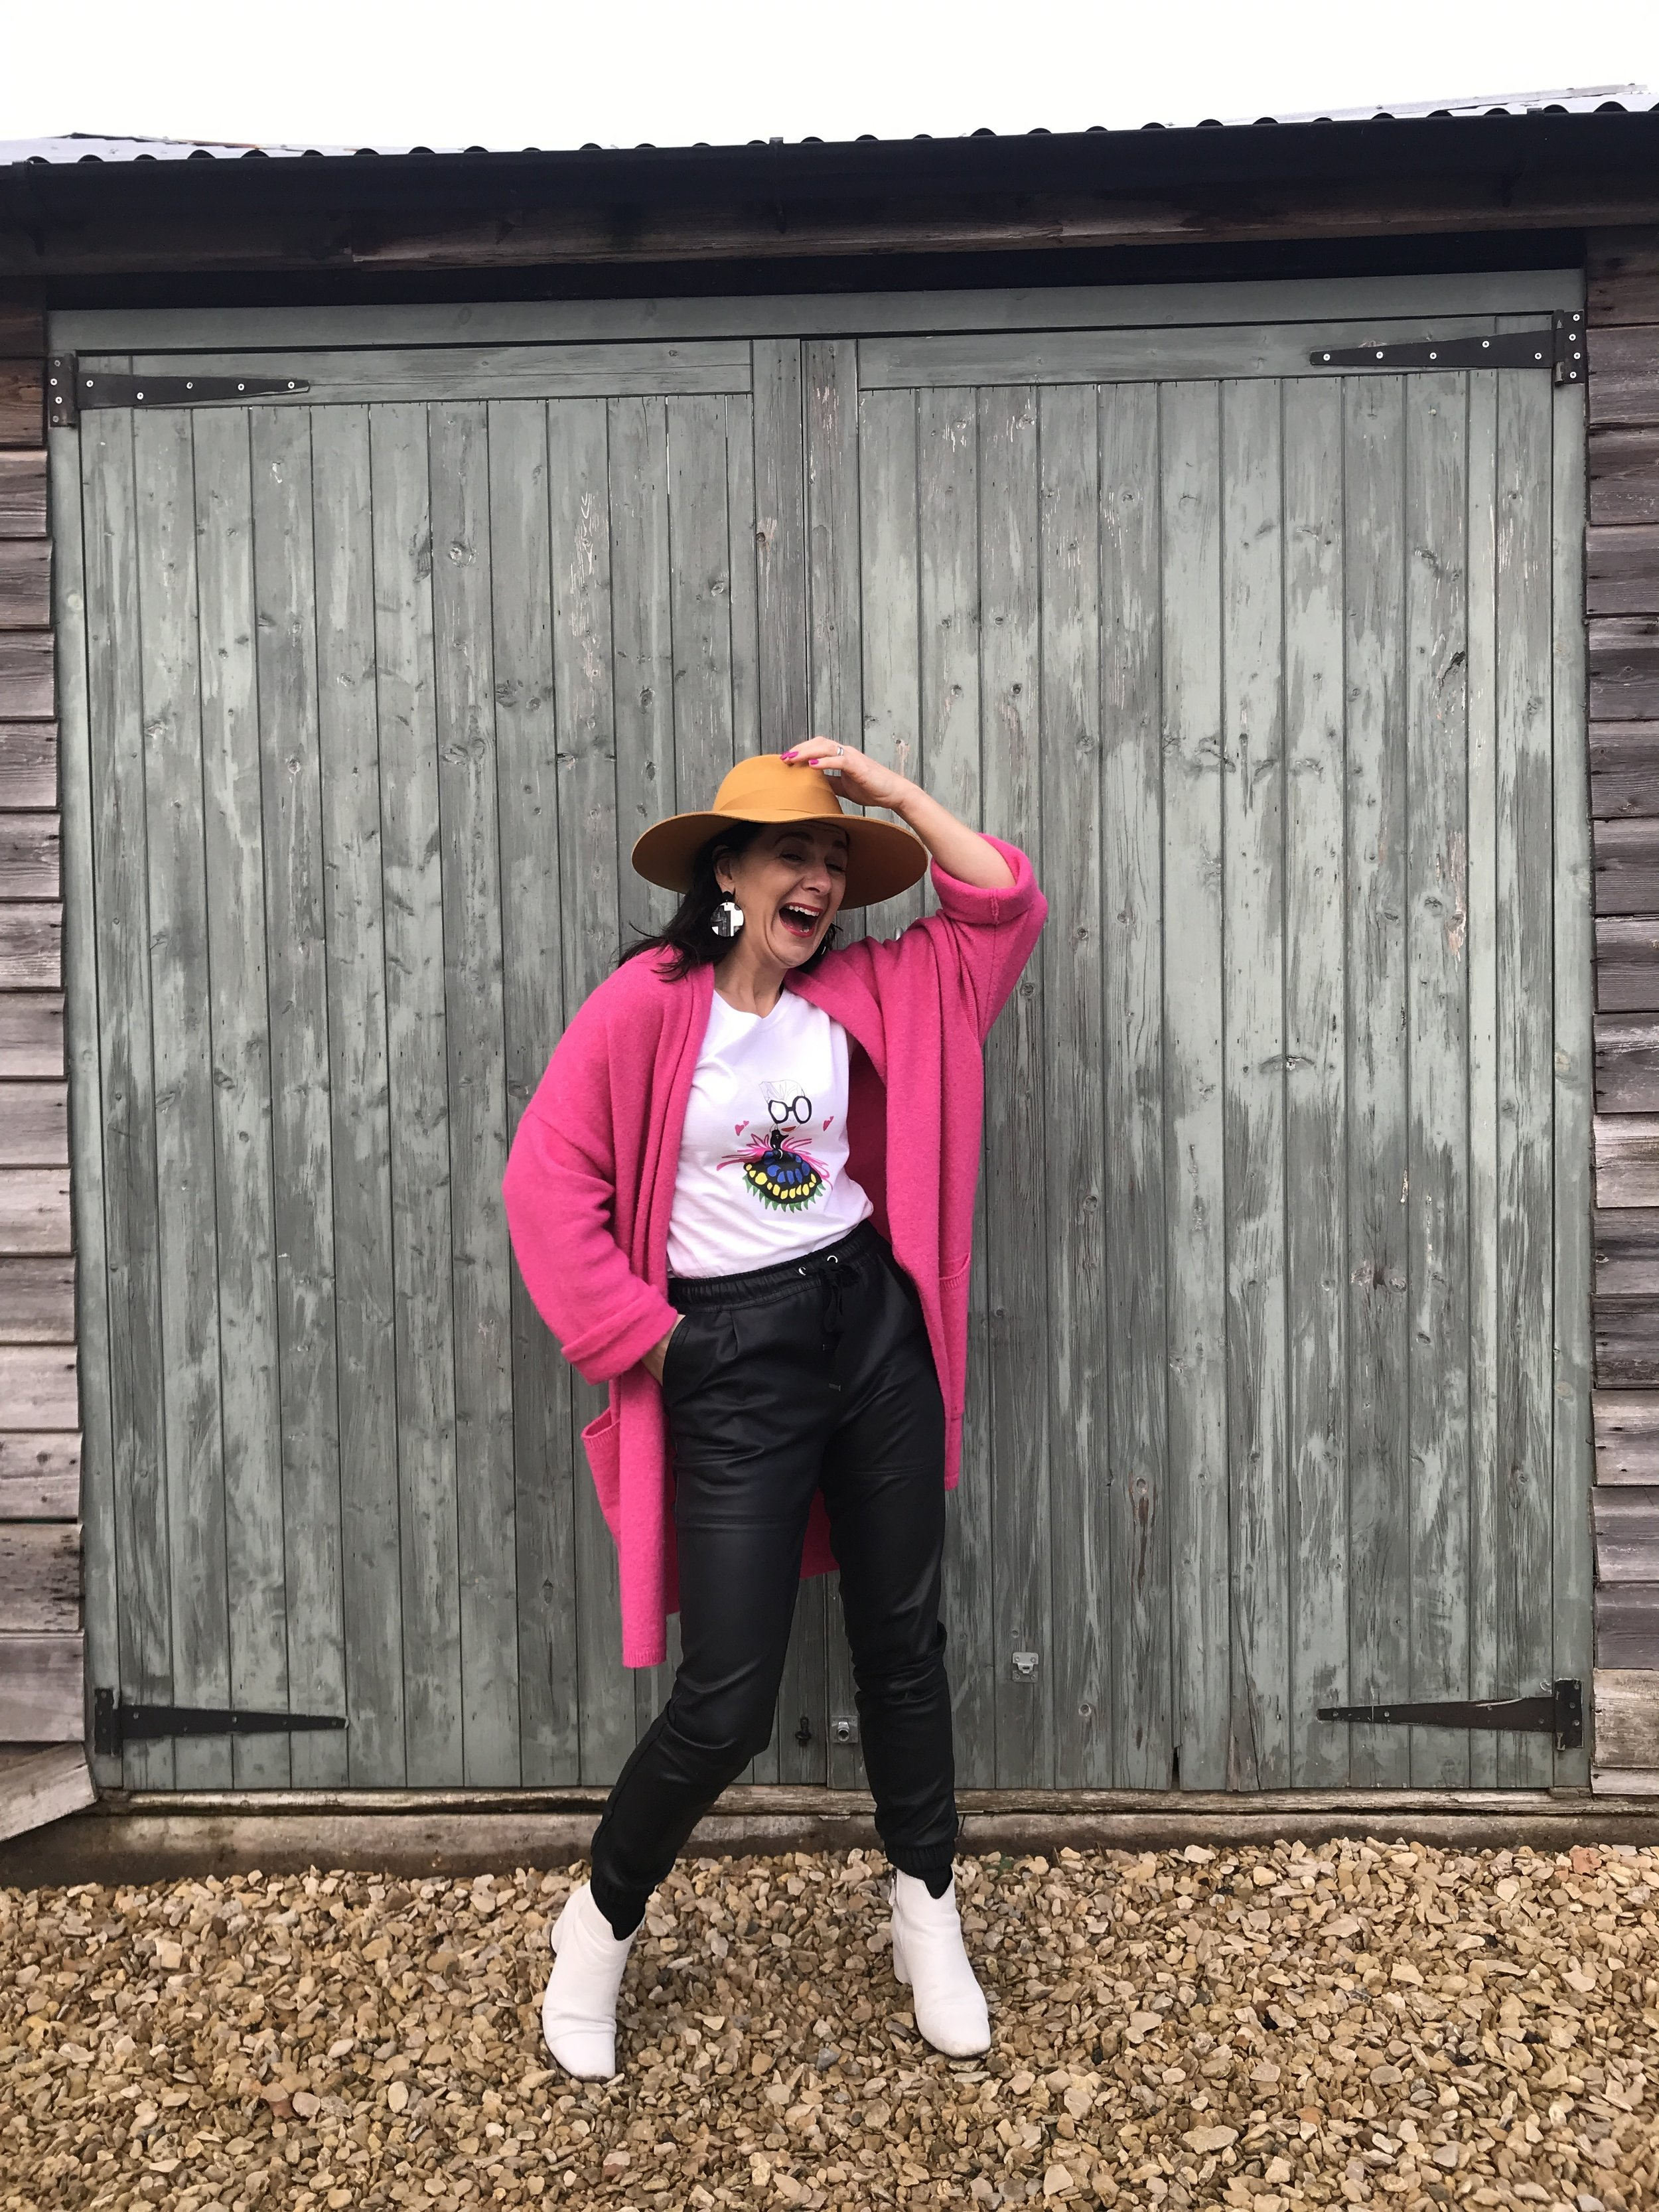 My neon K ettlewell Colours  Wrap and  Gina Potte r T-shirt